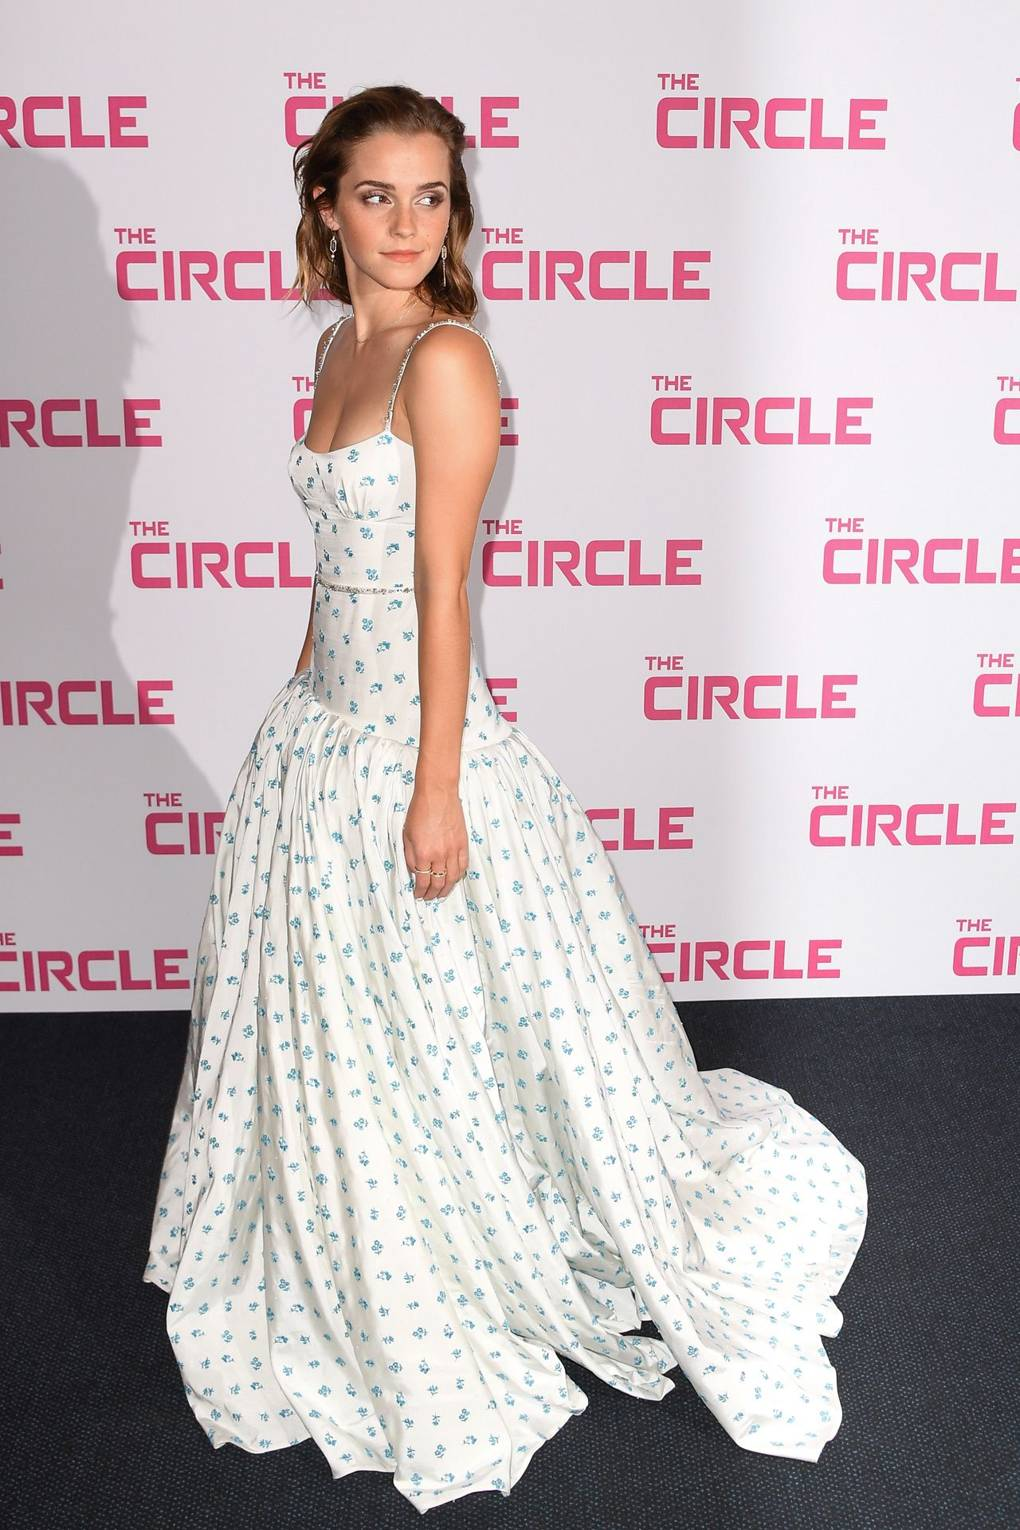 Emma Watson Wears Miu Miu at Paris Premiere of The Circle | British ...